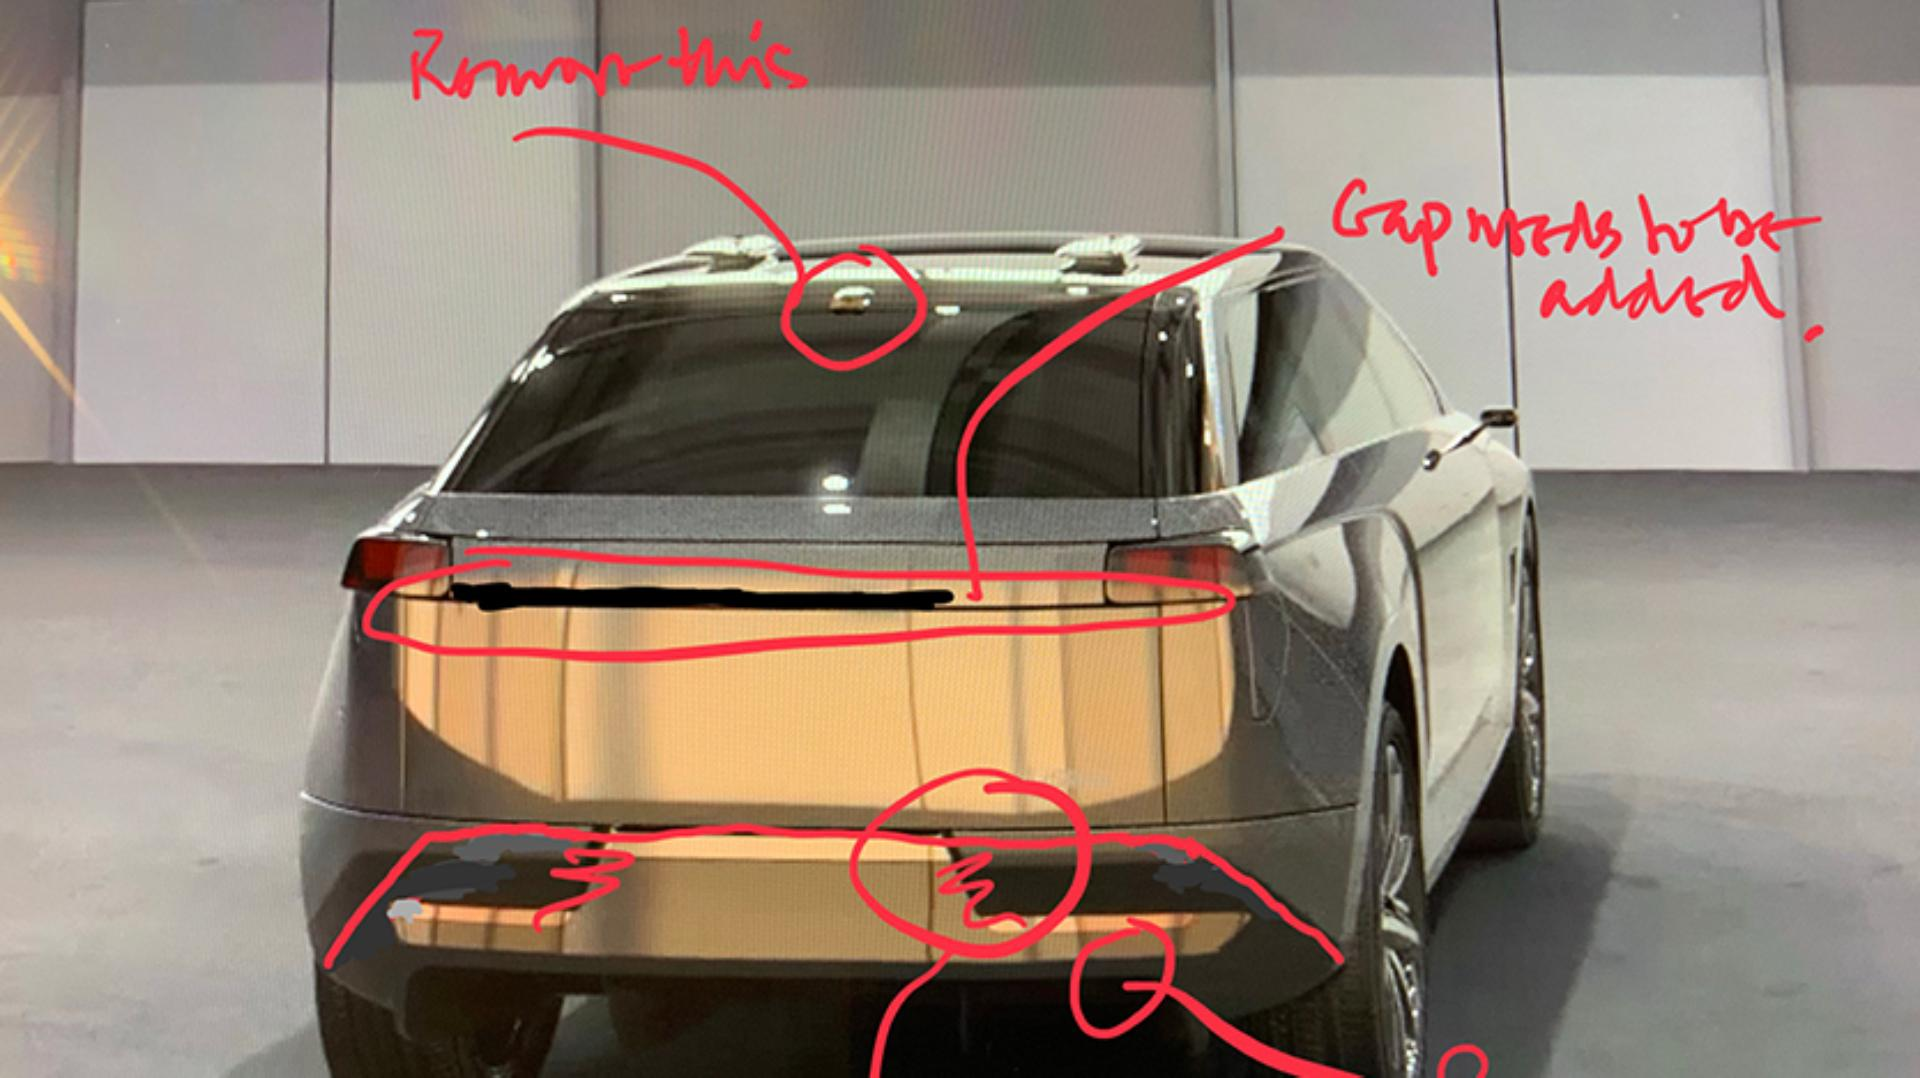 Car with handwritten notes and comments from James Dyson